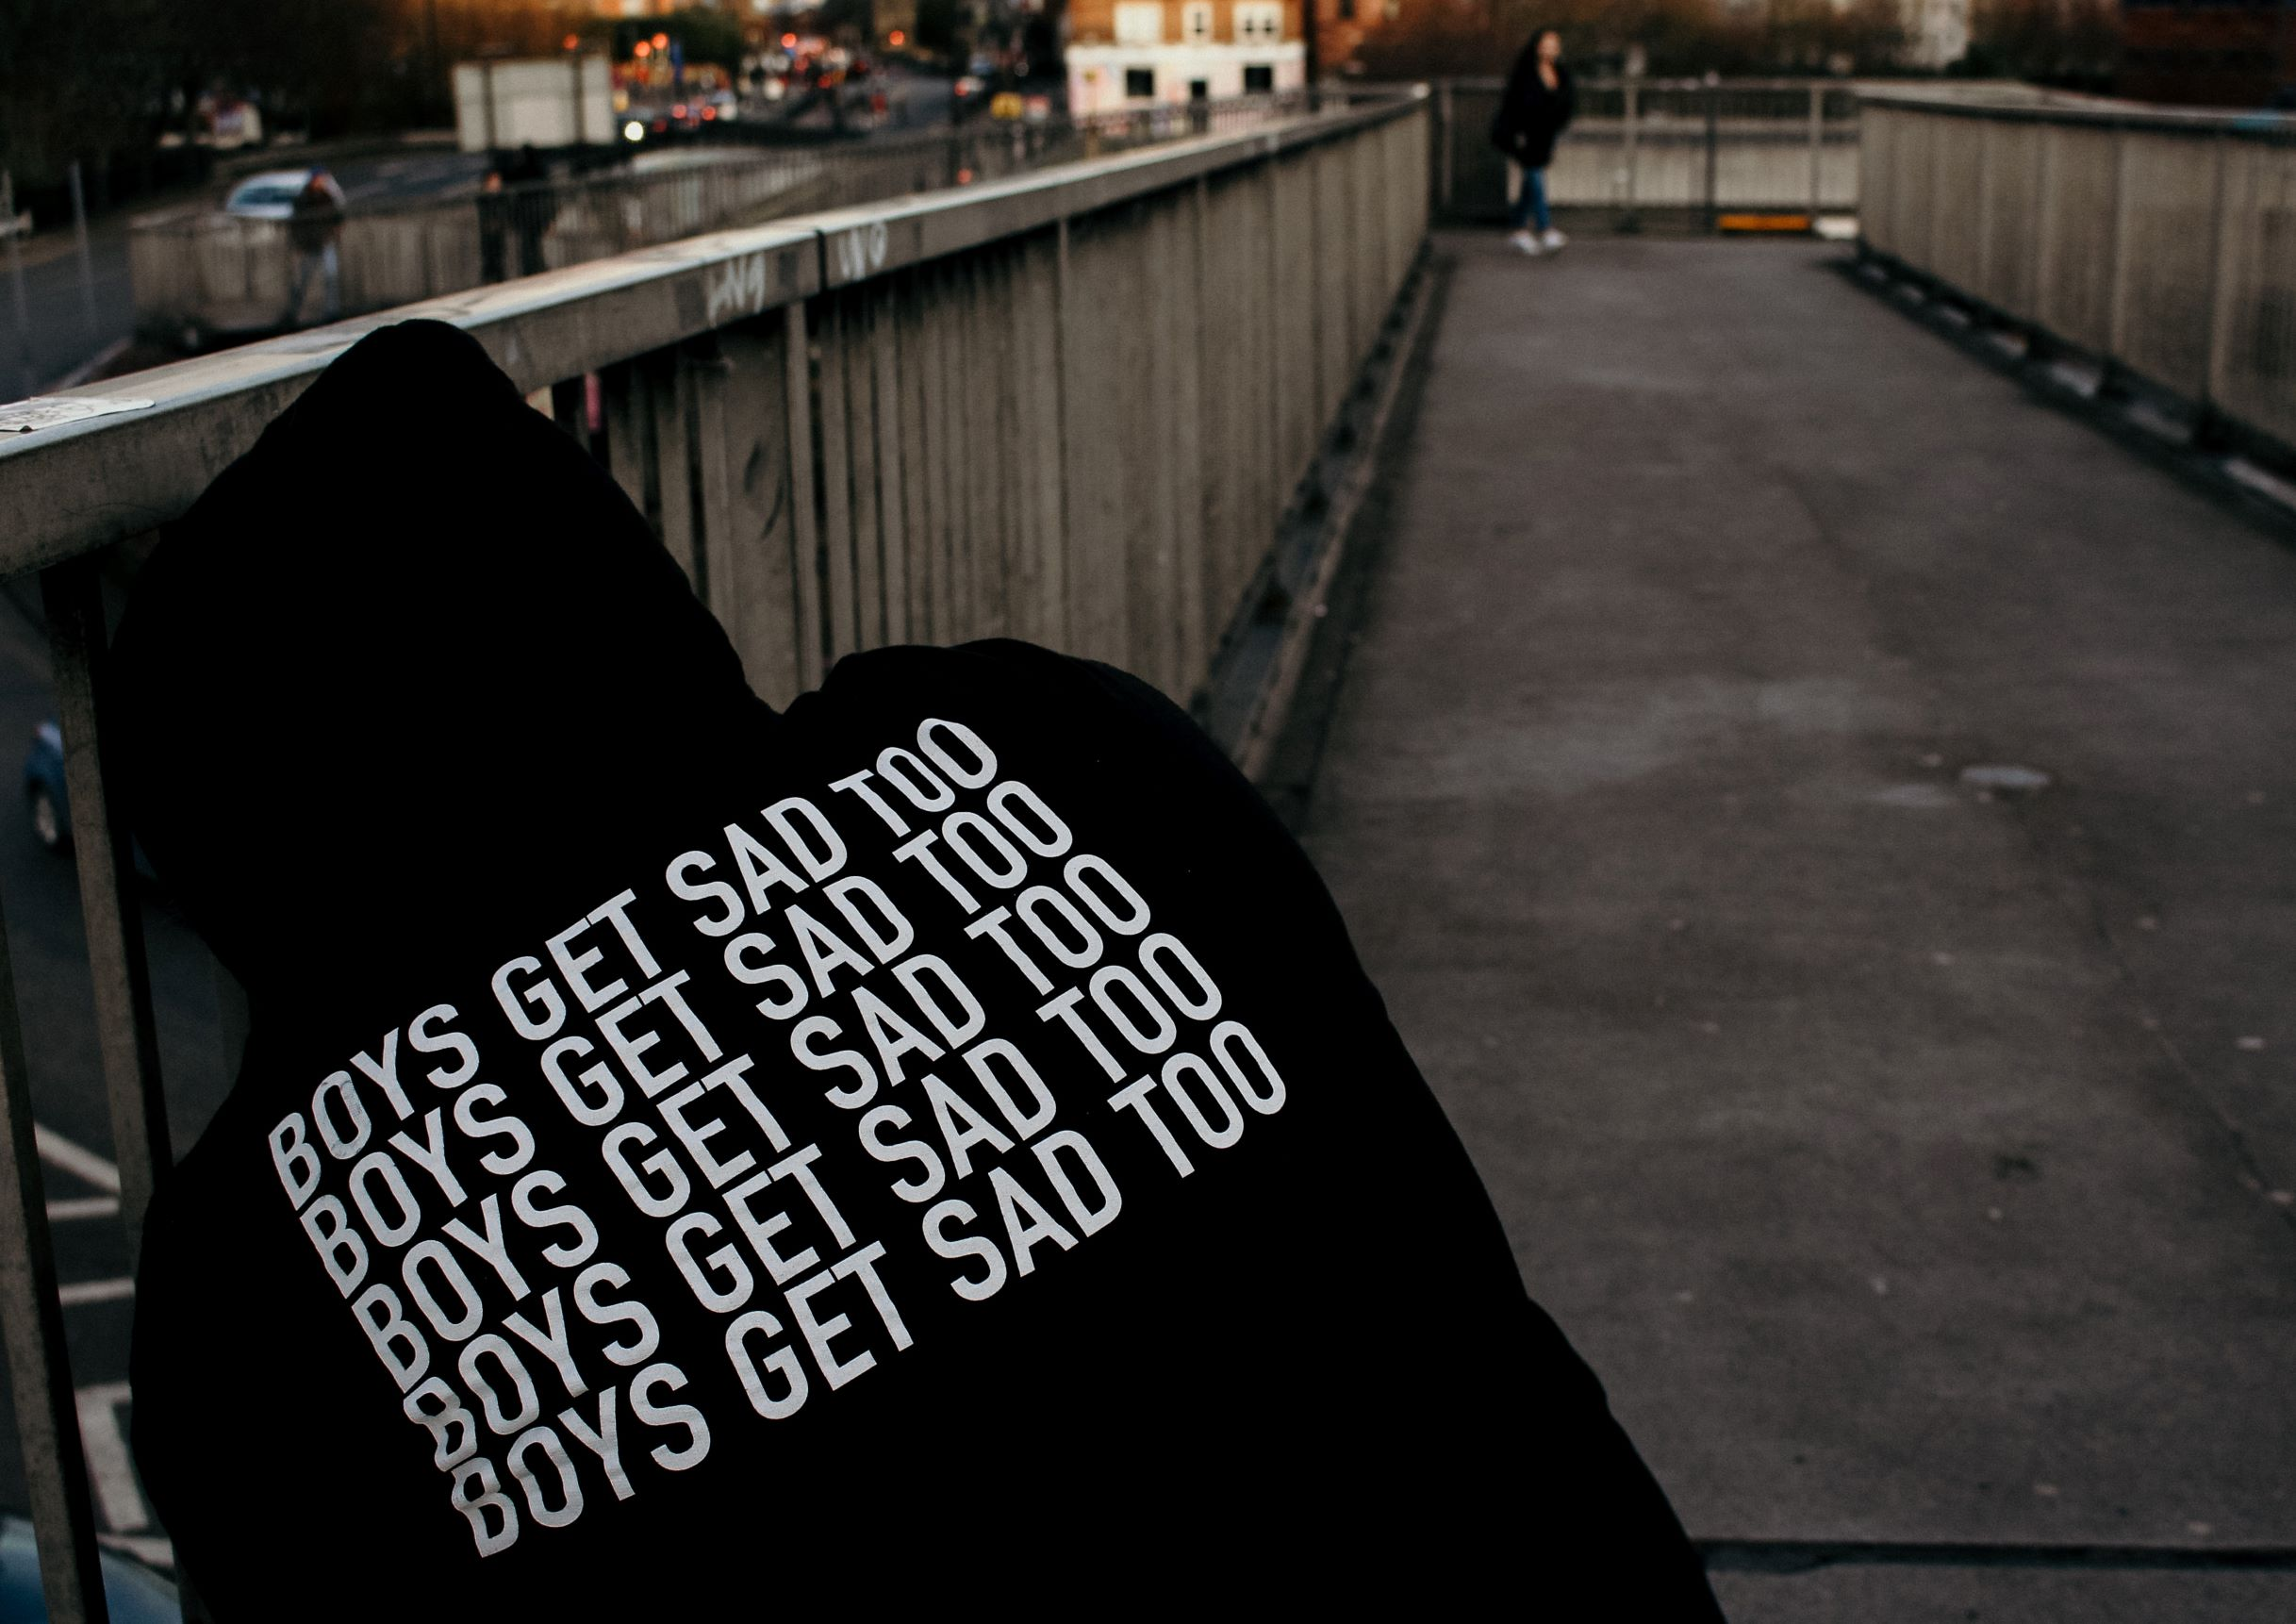 """Back of a person wearing a black sweatshirt that says """"Boys Get Sad Too."""" Colors are dark to represent depression in men."""